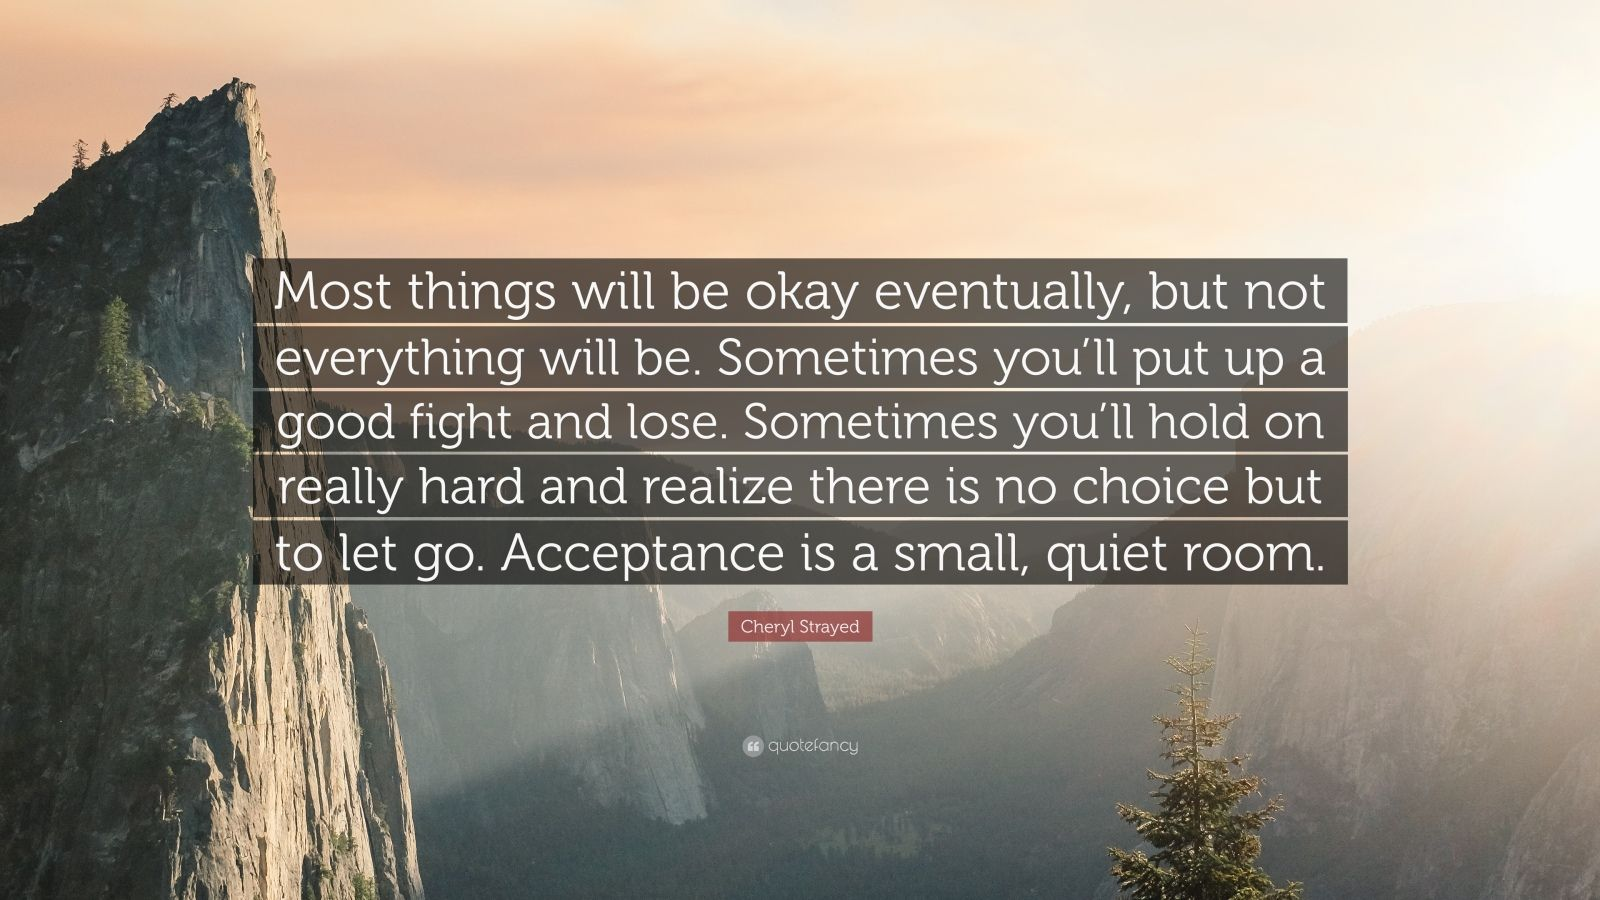 "Letting Go Quotes: ""Most things will be okay eventually, but not everything will be. Sometimes you'll put up a good fight and lose. Sometimes you'll hold on really hard and realize there is no choice but to let go. Acceptance is a small, quiet room."" — Cheryl Strayed"